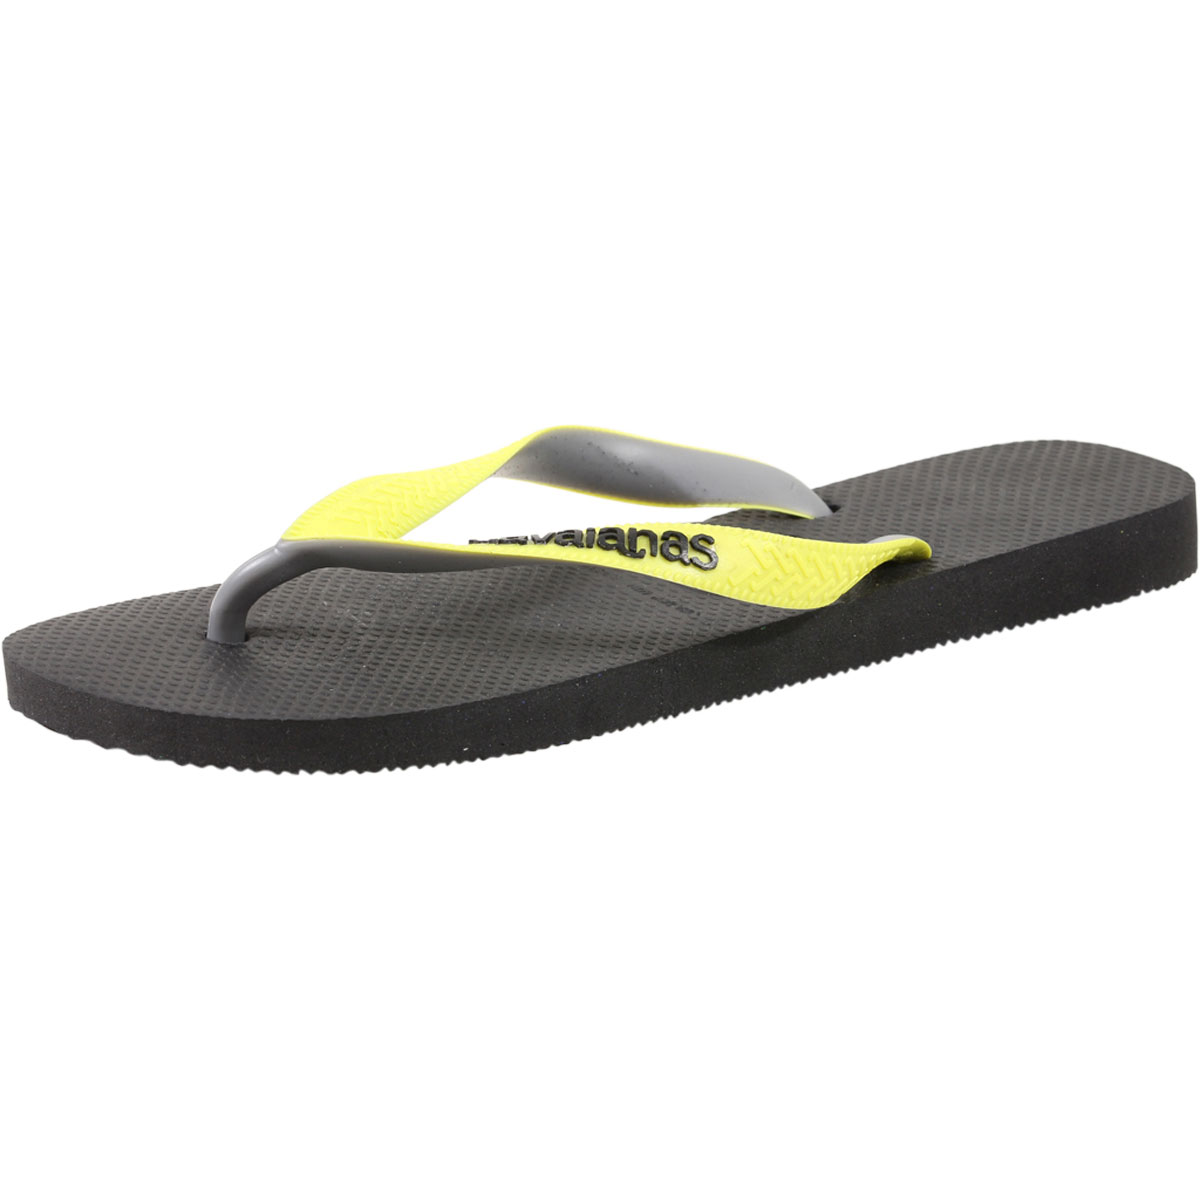 698ca6bc0f55a1 Havaianas Top Mix Flip Flops Sandals Shoes